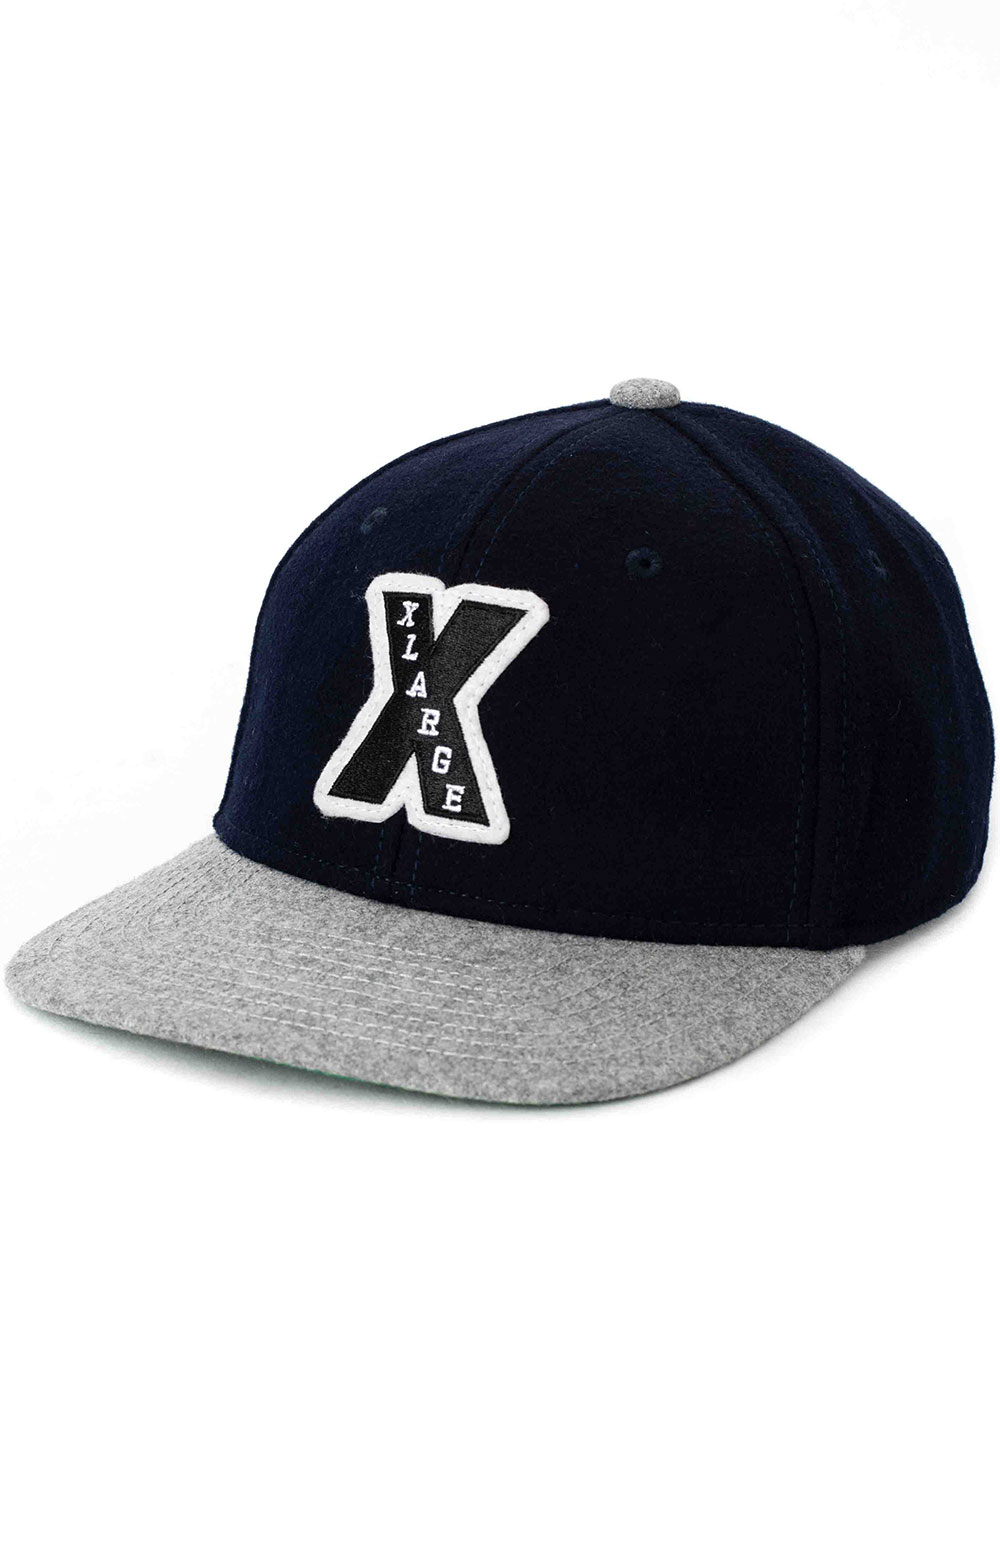 Patched Wool Cap - Navy